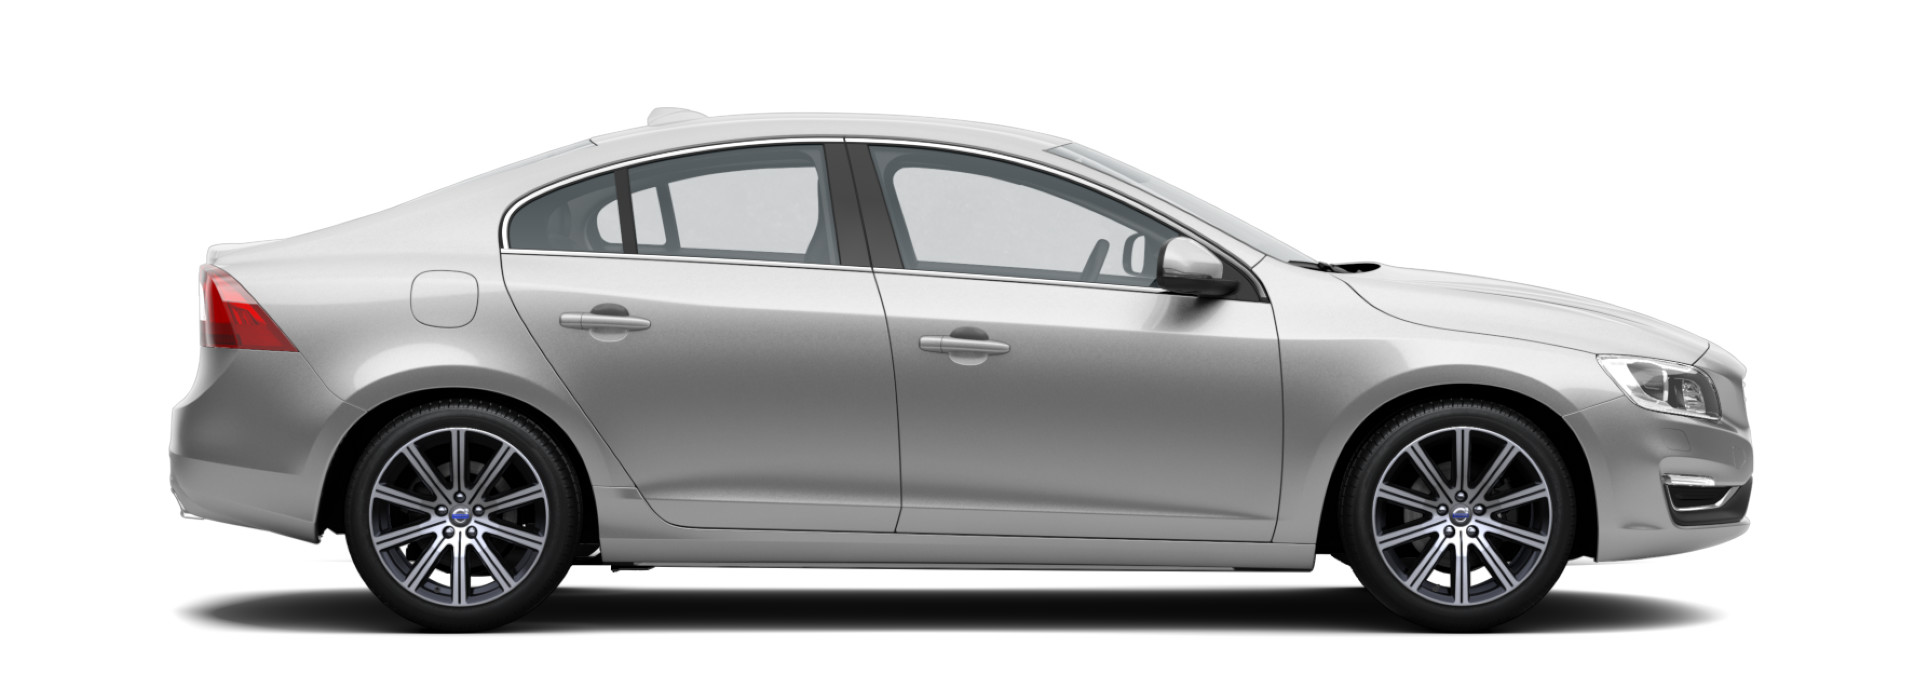 Betere Volvo accessoires | Mobility Centre GV-96